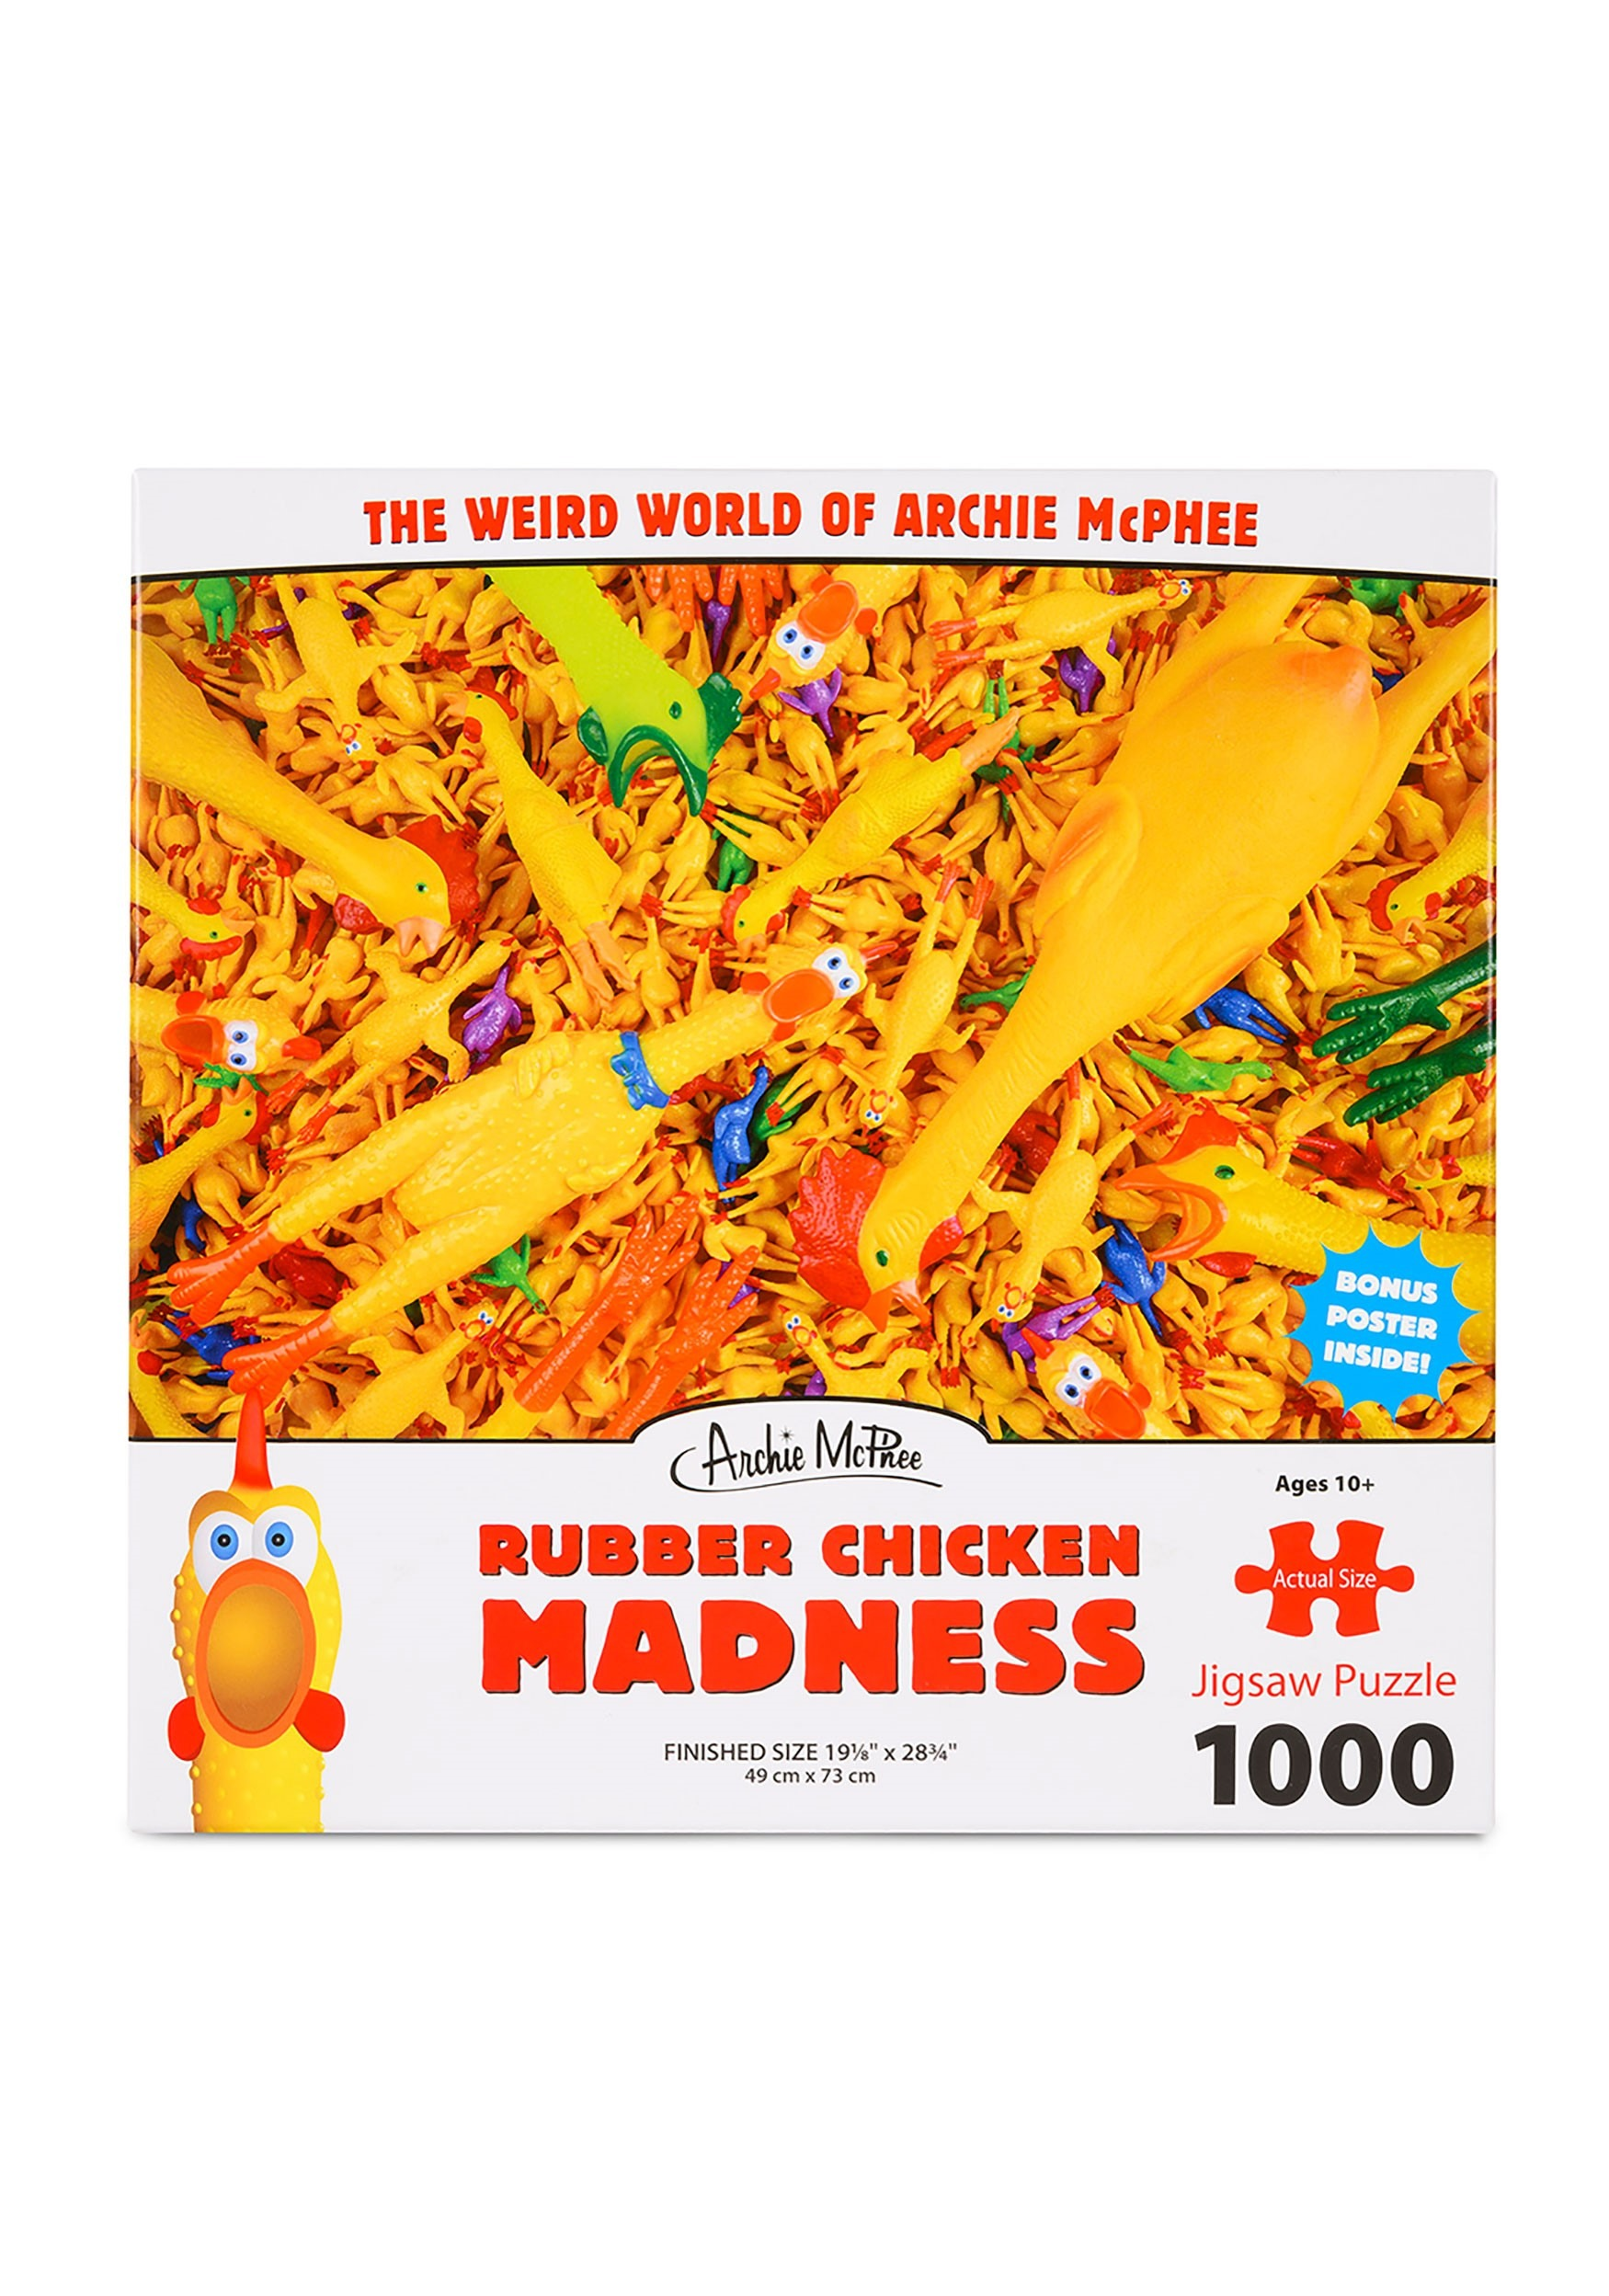 1000-Piece Rubber Chicken Madness Jigsaw Puzzle